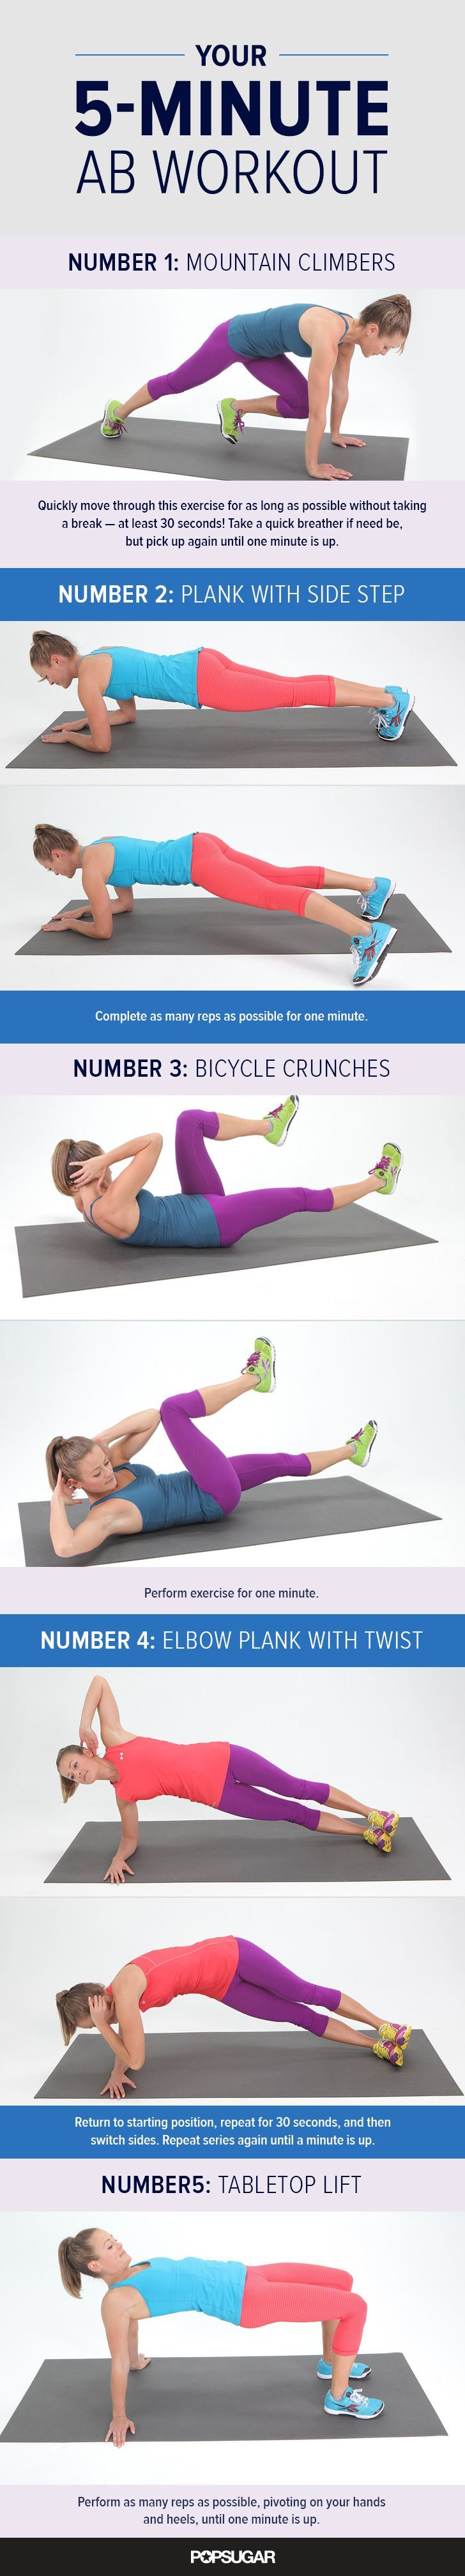 Dedicate 10 minutes every day, complete this ab circuit two times, and start seeing big results.